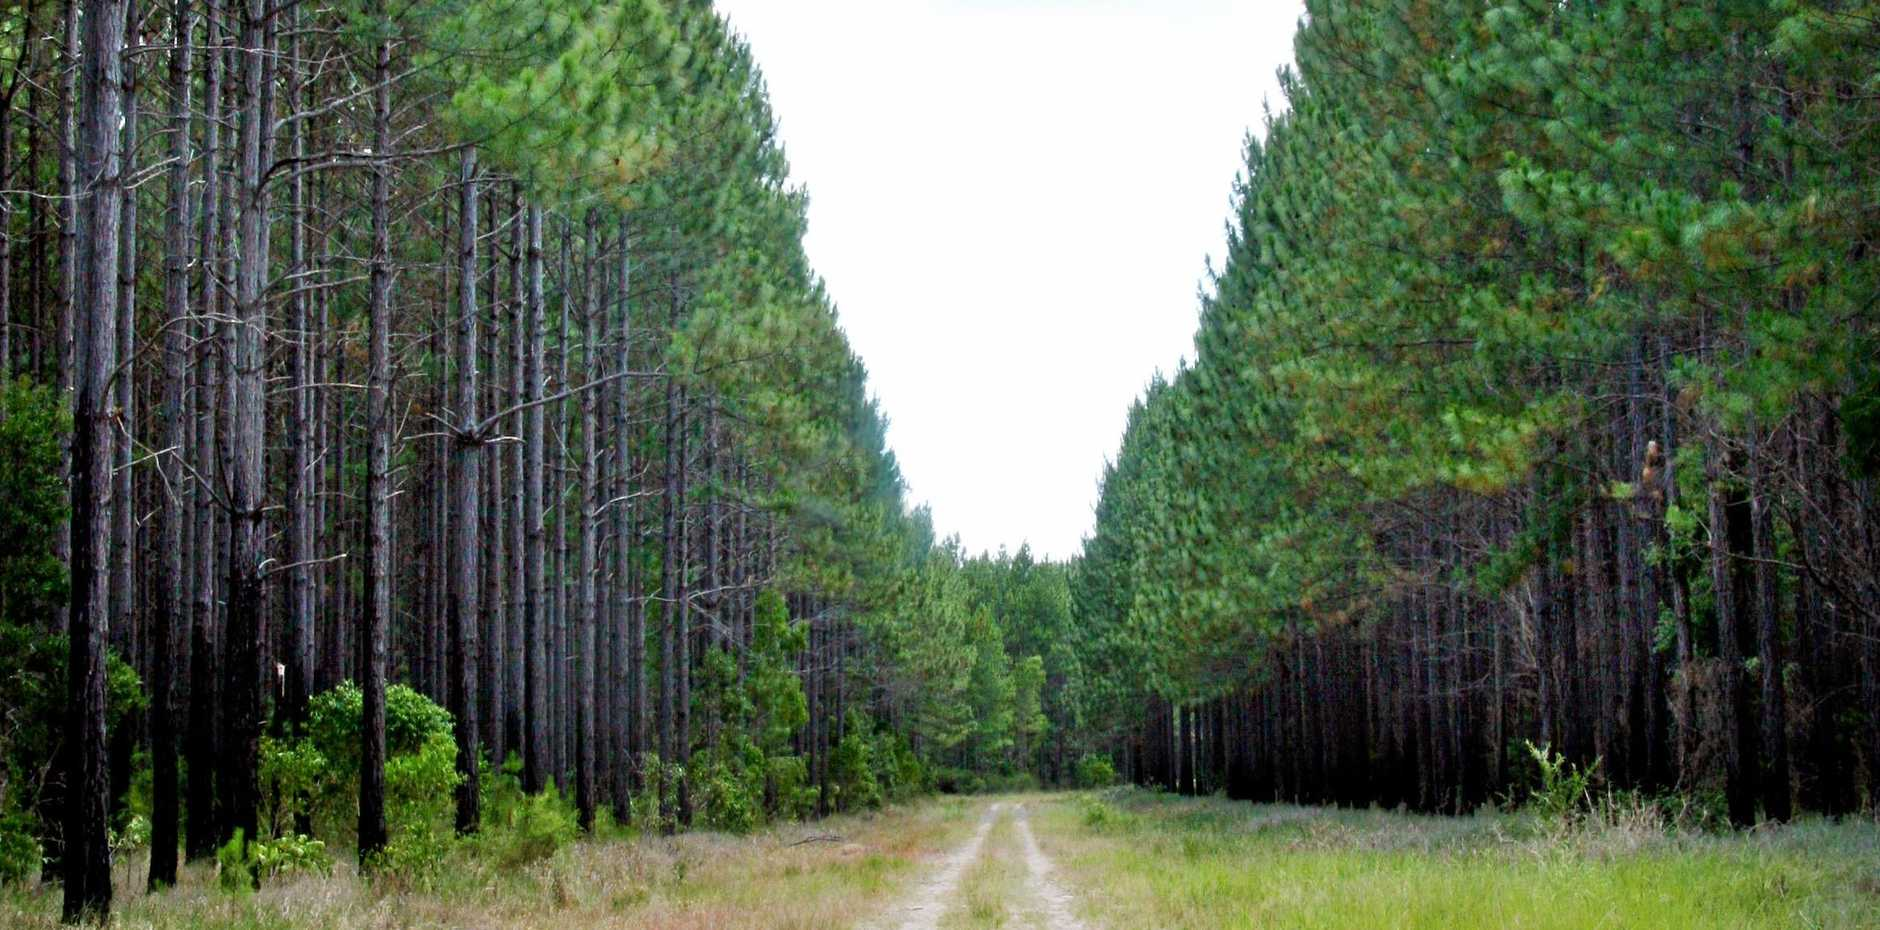 Dirt road lined with pine trees in Byfield. Photo: Tamara MacKenzie / The Morning Bulletin